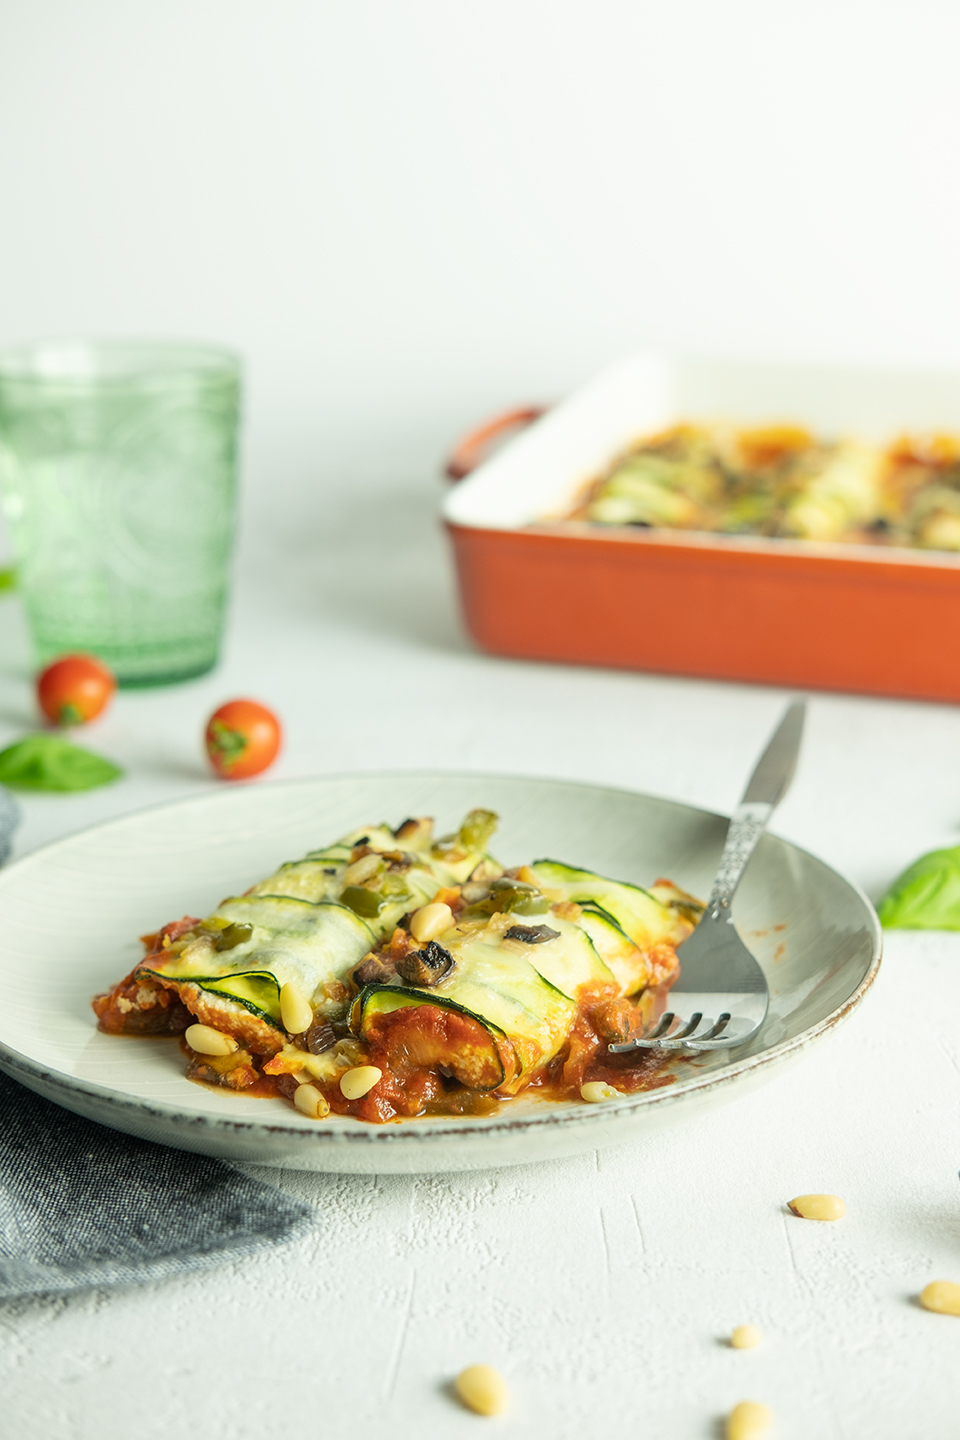 JodiLoves_Low-Carb Zucchini-Ricotta-Cannelloni_Low_plated-BEFORE.jpg